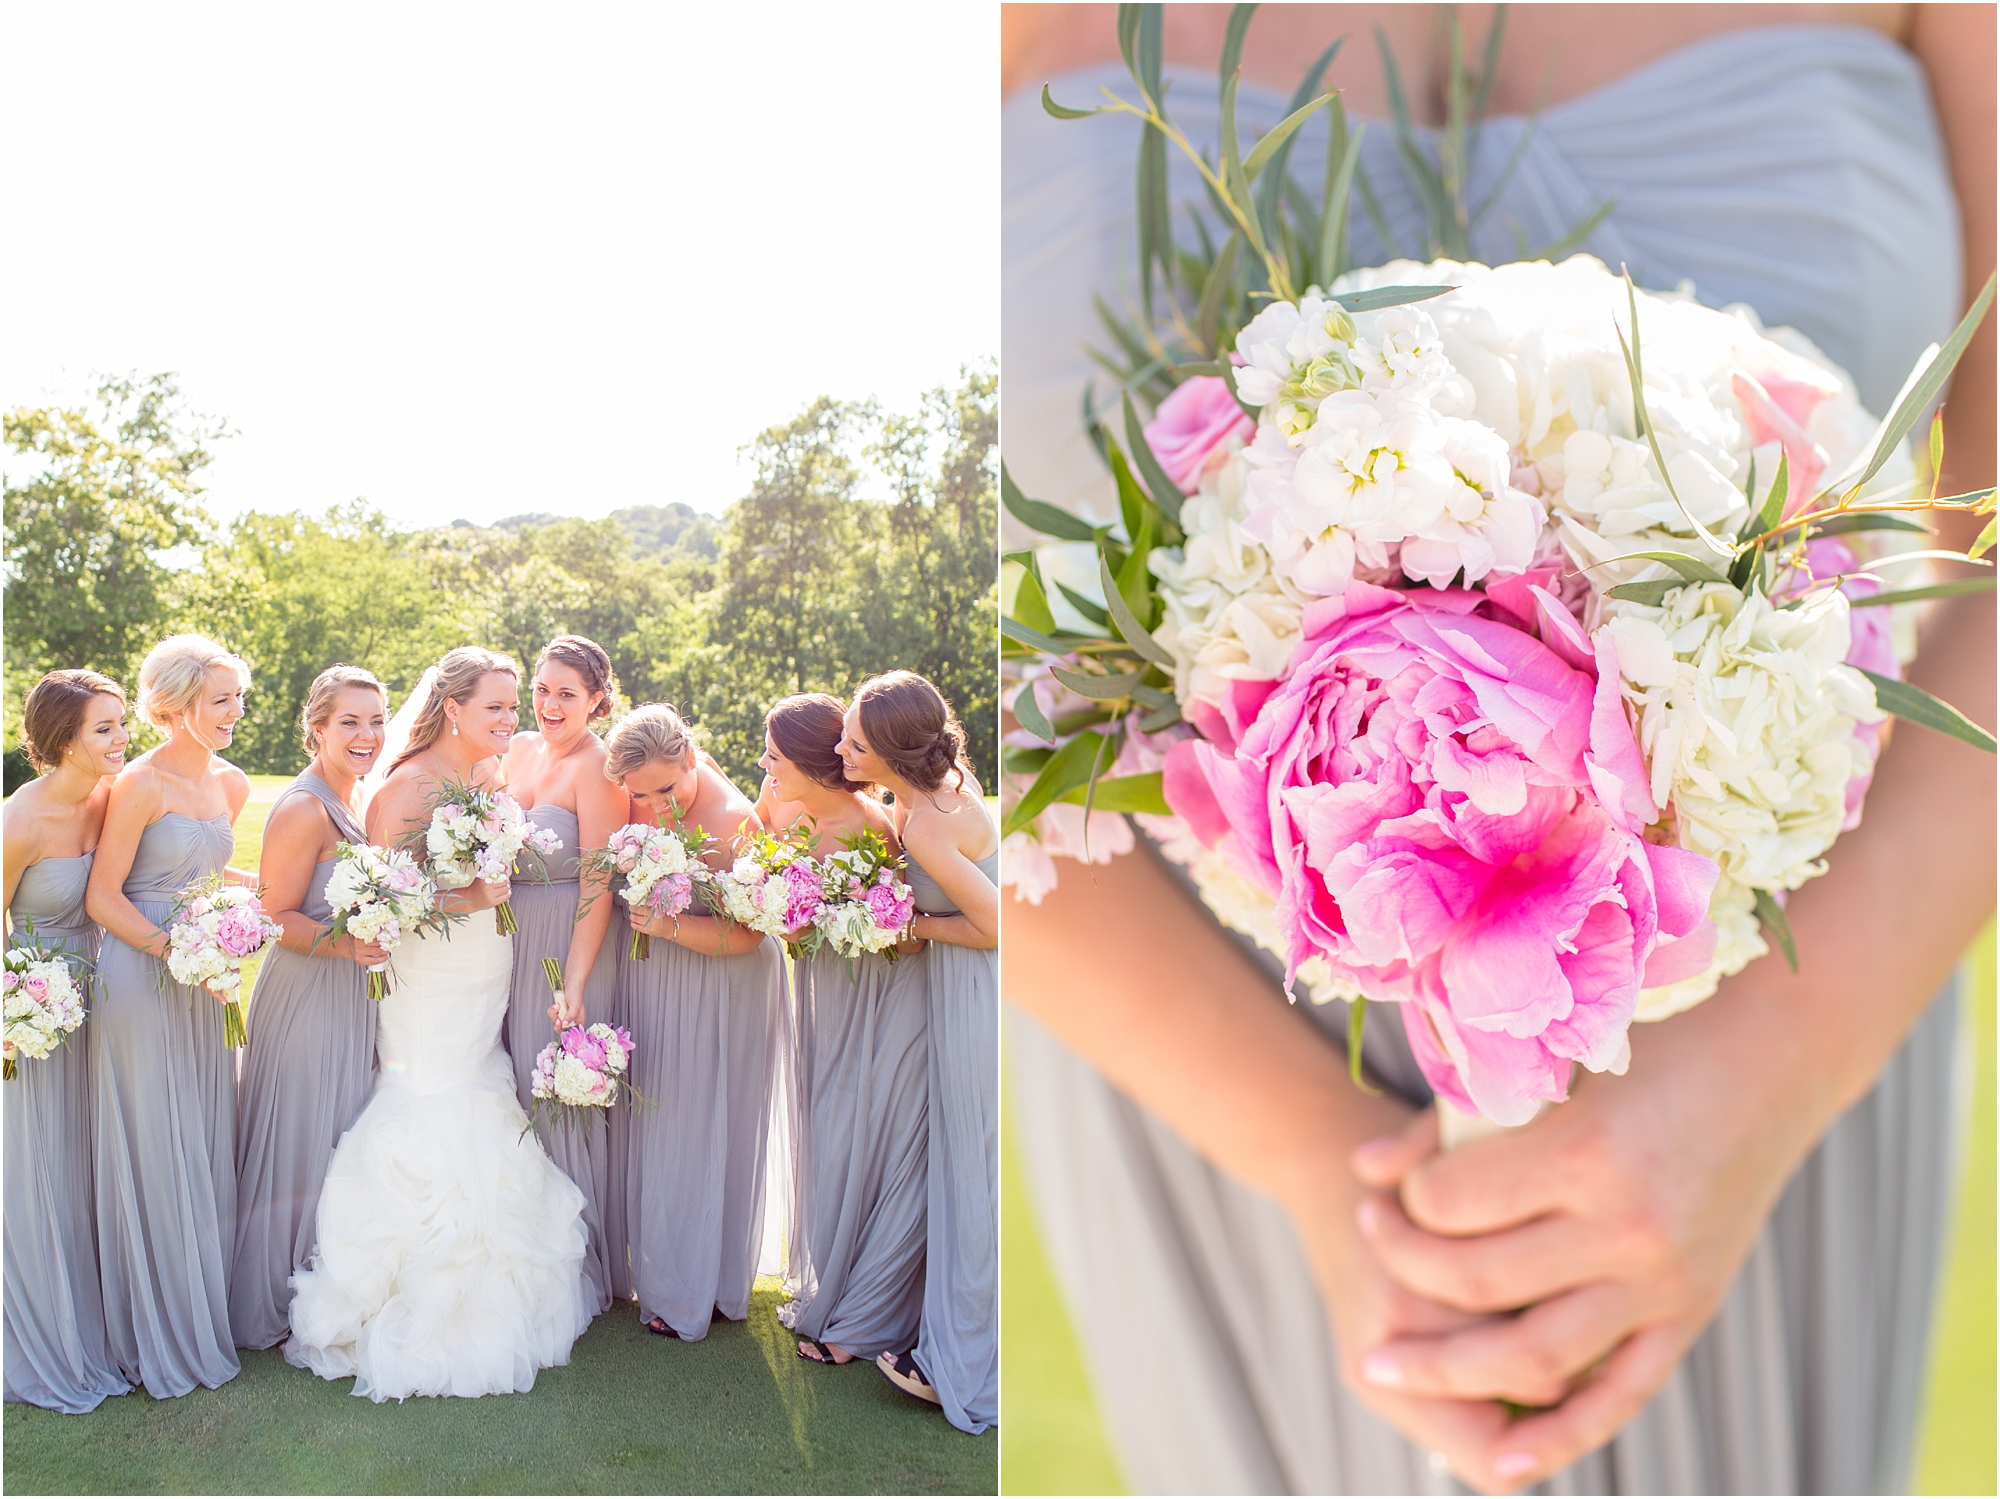 Peterson 4-Bridal Party-637_anna grace photography milford connecticut destination wedding photographer Great River Country Club photo.jpg